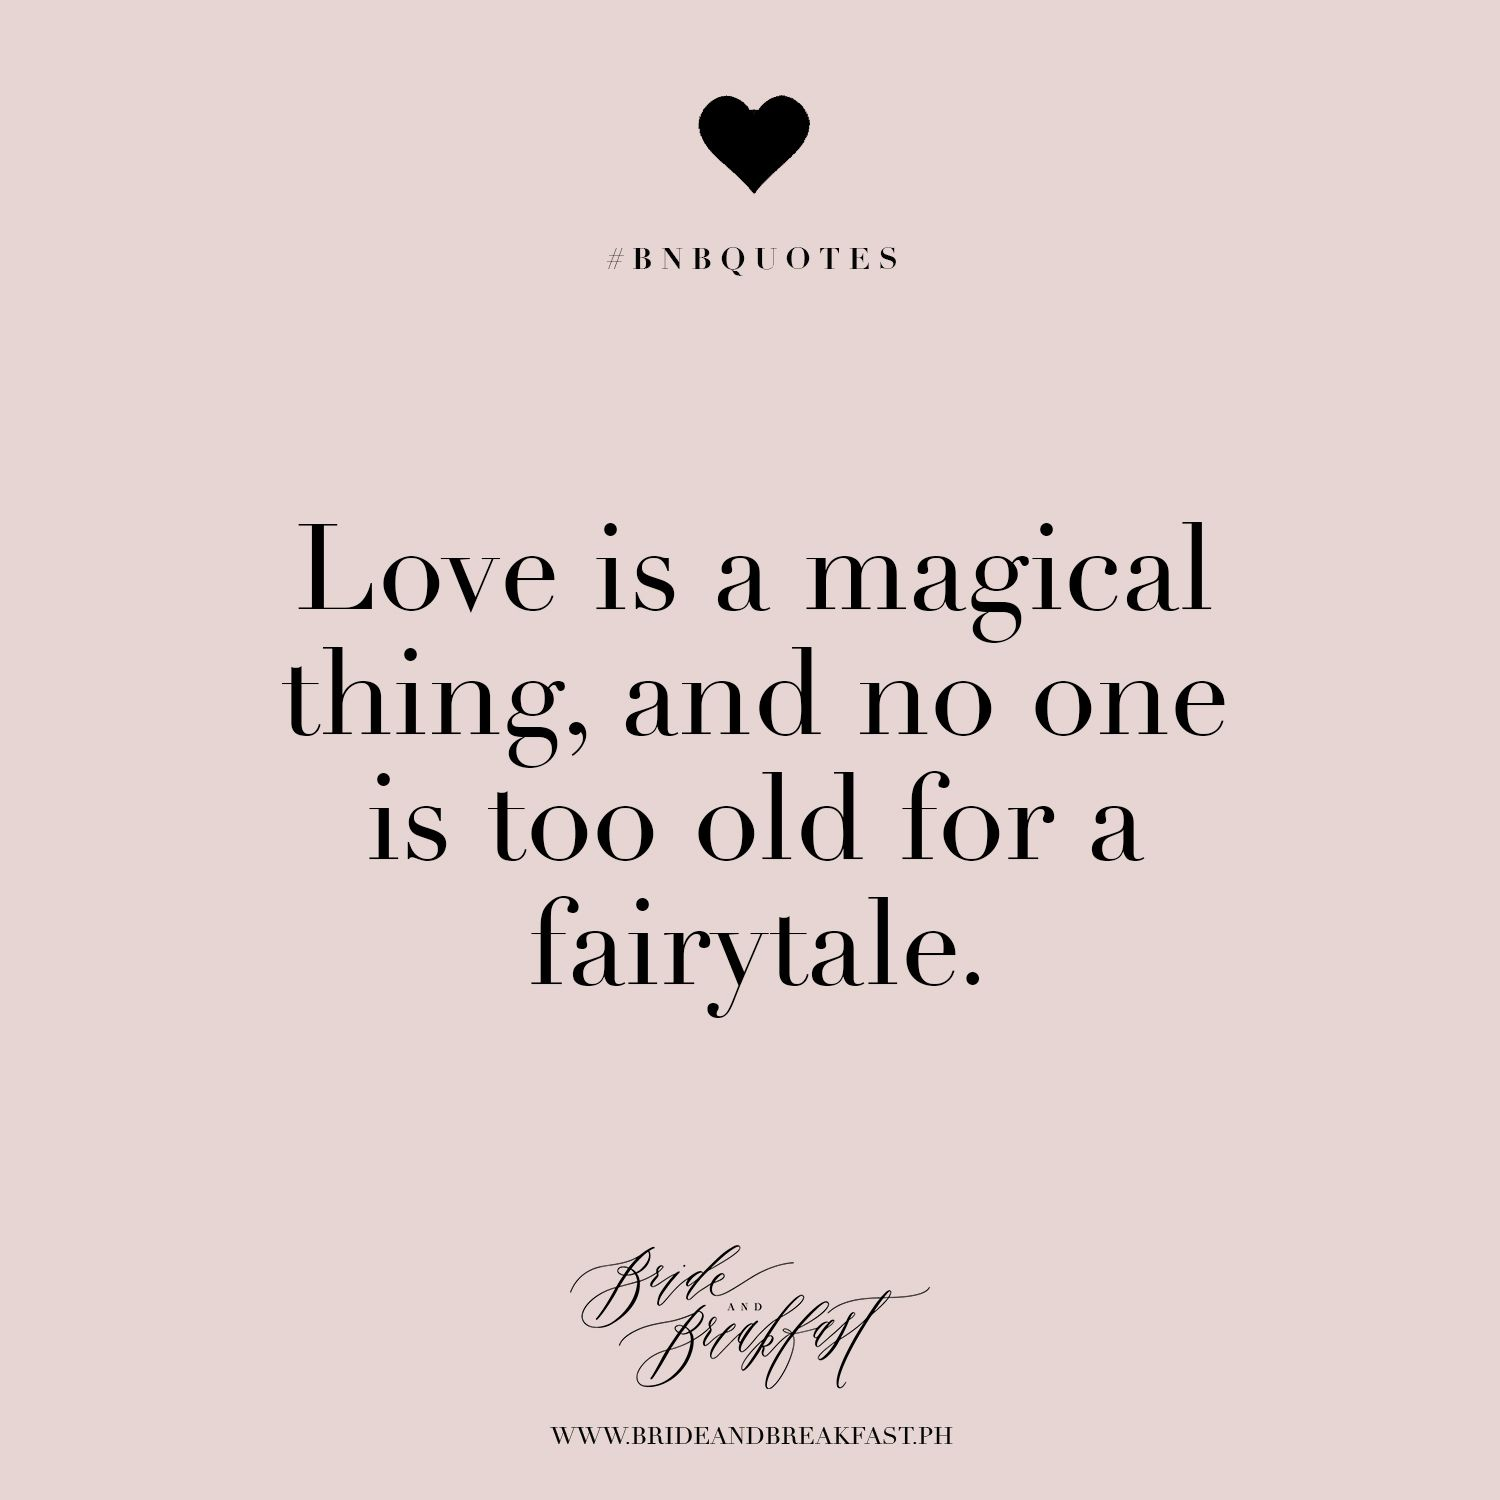 Genial Love Is A Magical Thing, And No One Is Too Old For A Fairytale